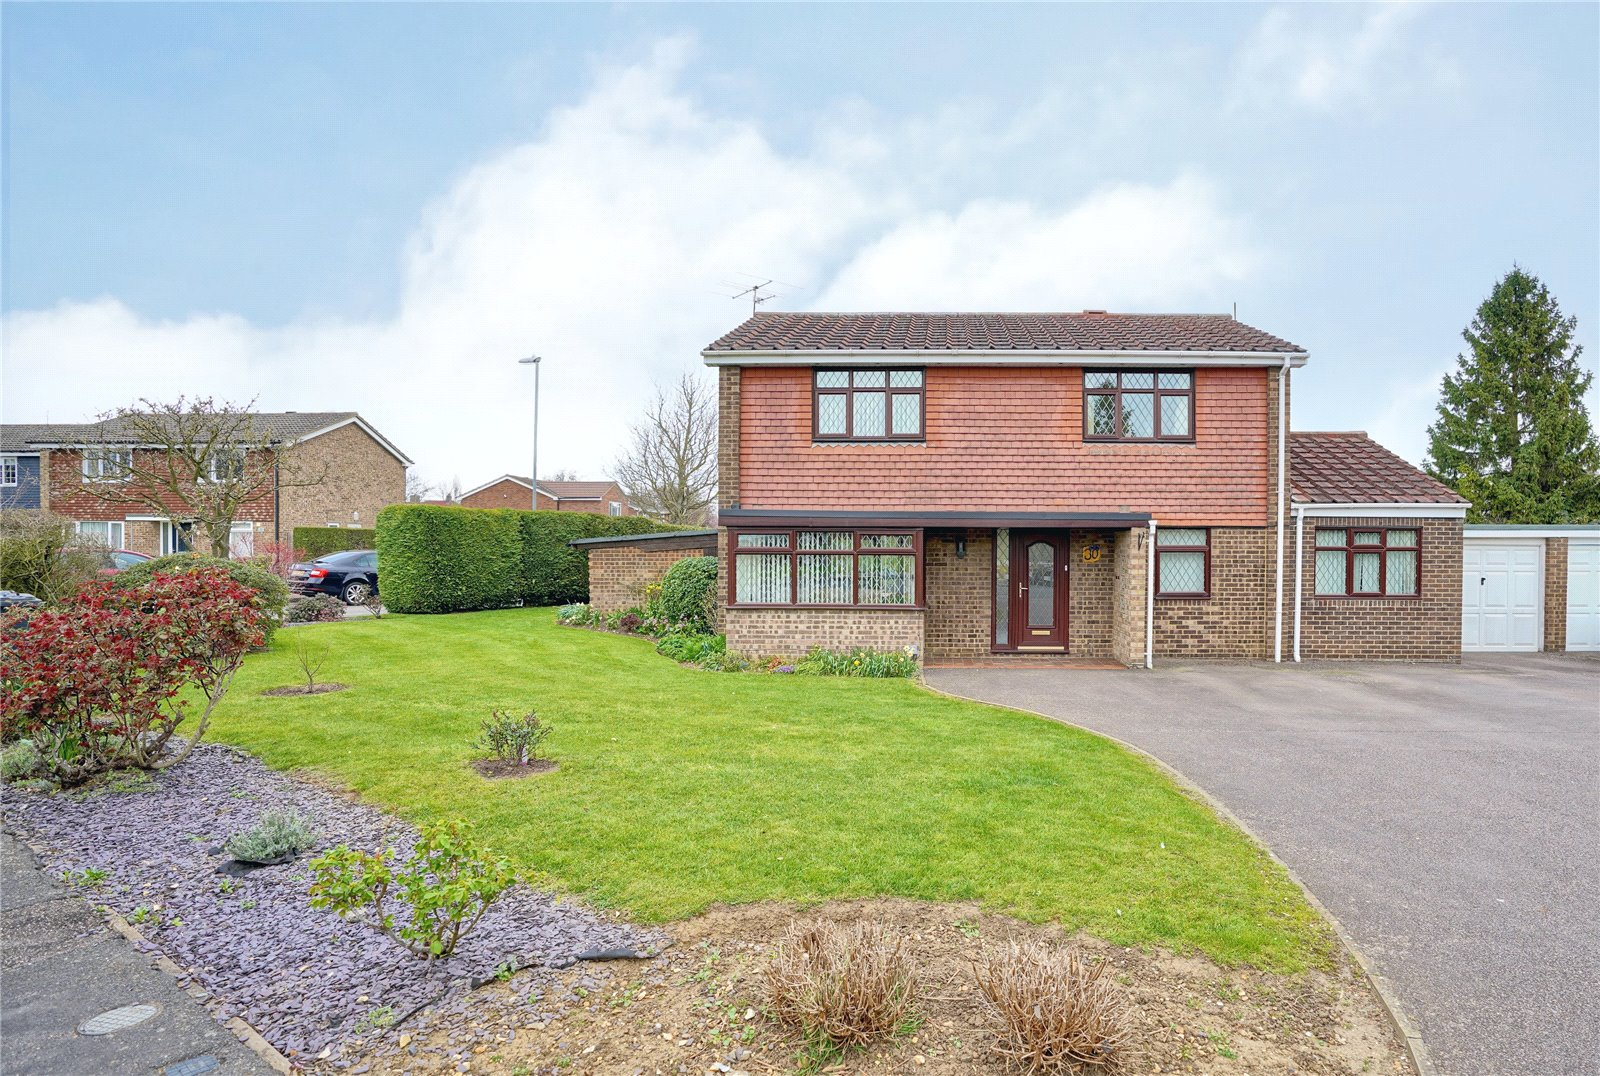 4 bed house for sale in Milton Avenue, Eaton Ford - Property Image 1